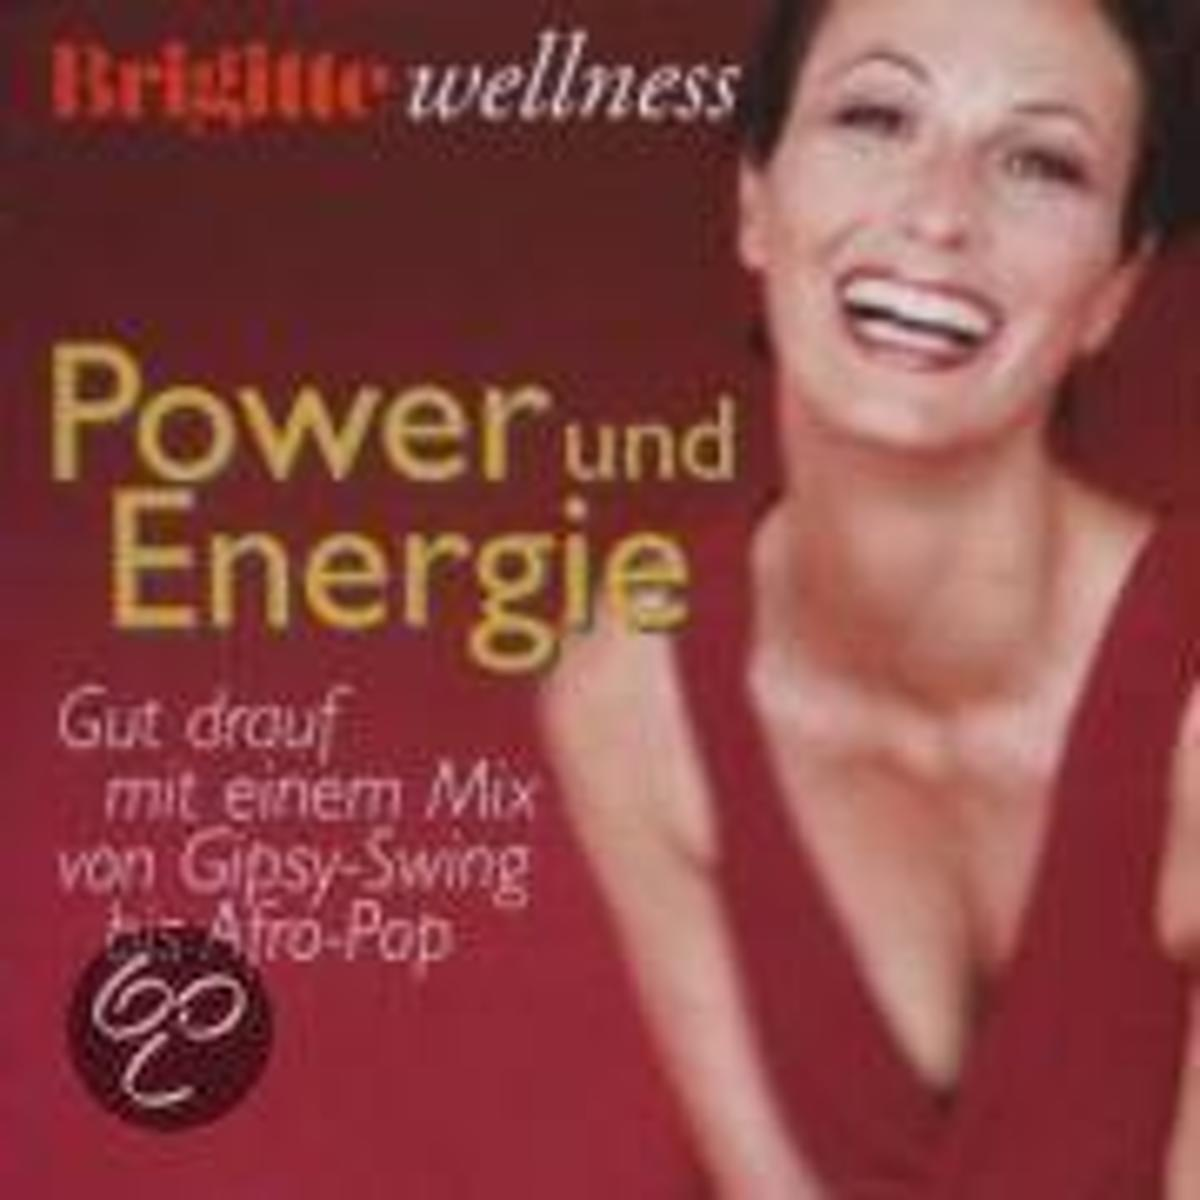 Afbeelding van product Brigitte Wellness. Power Und Energie. Cd